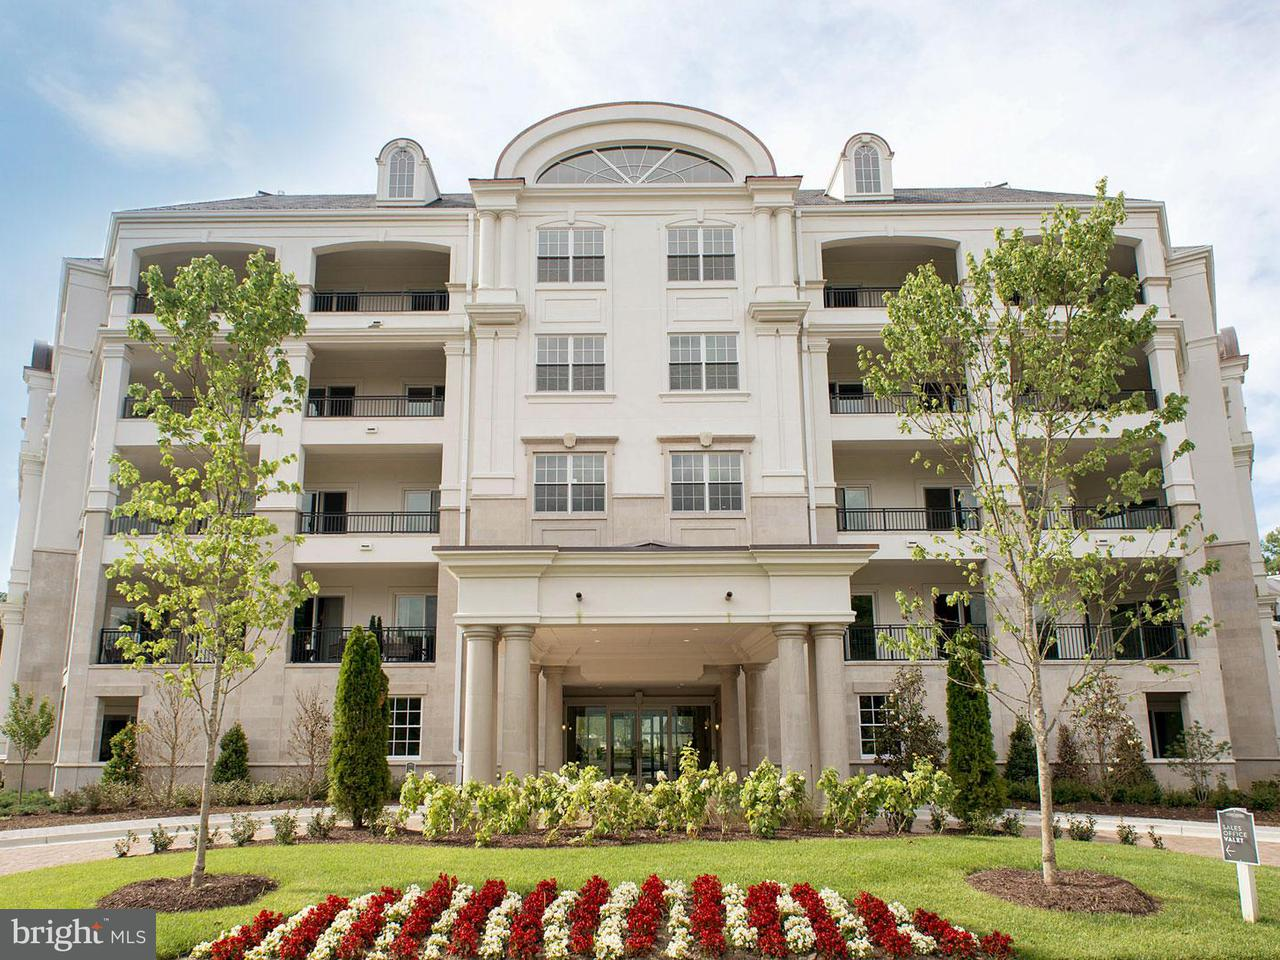 Condominium for Sale at 8111 River Rd #444 8111 River Rd #444 Bethesda, Maryland 20817 United States